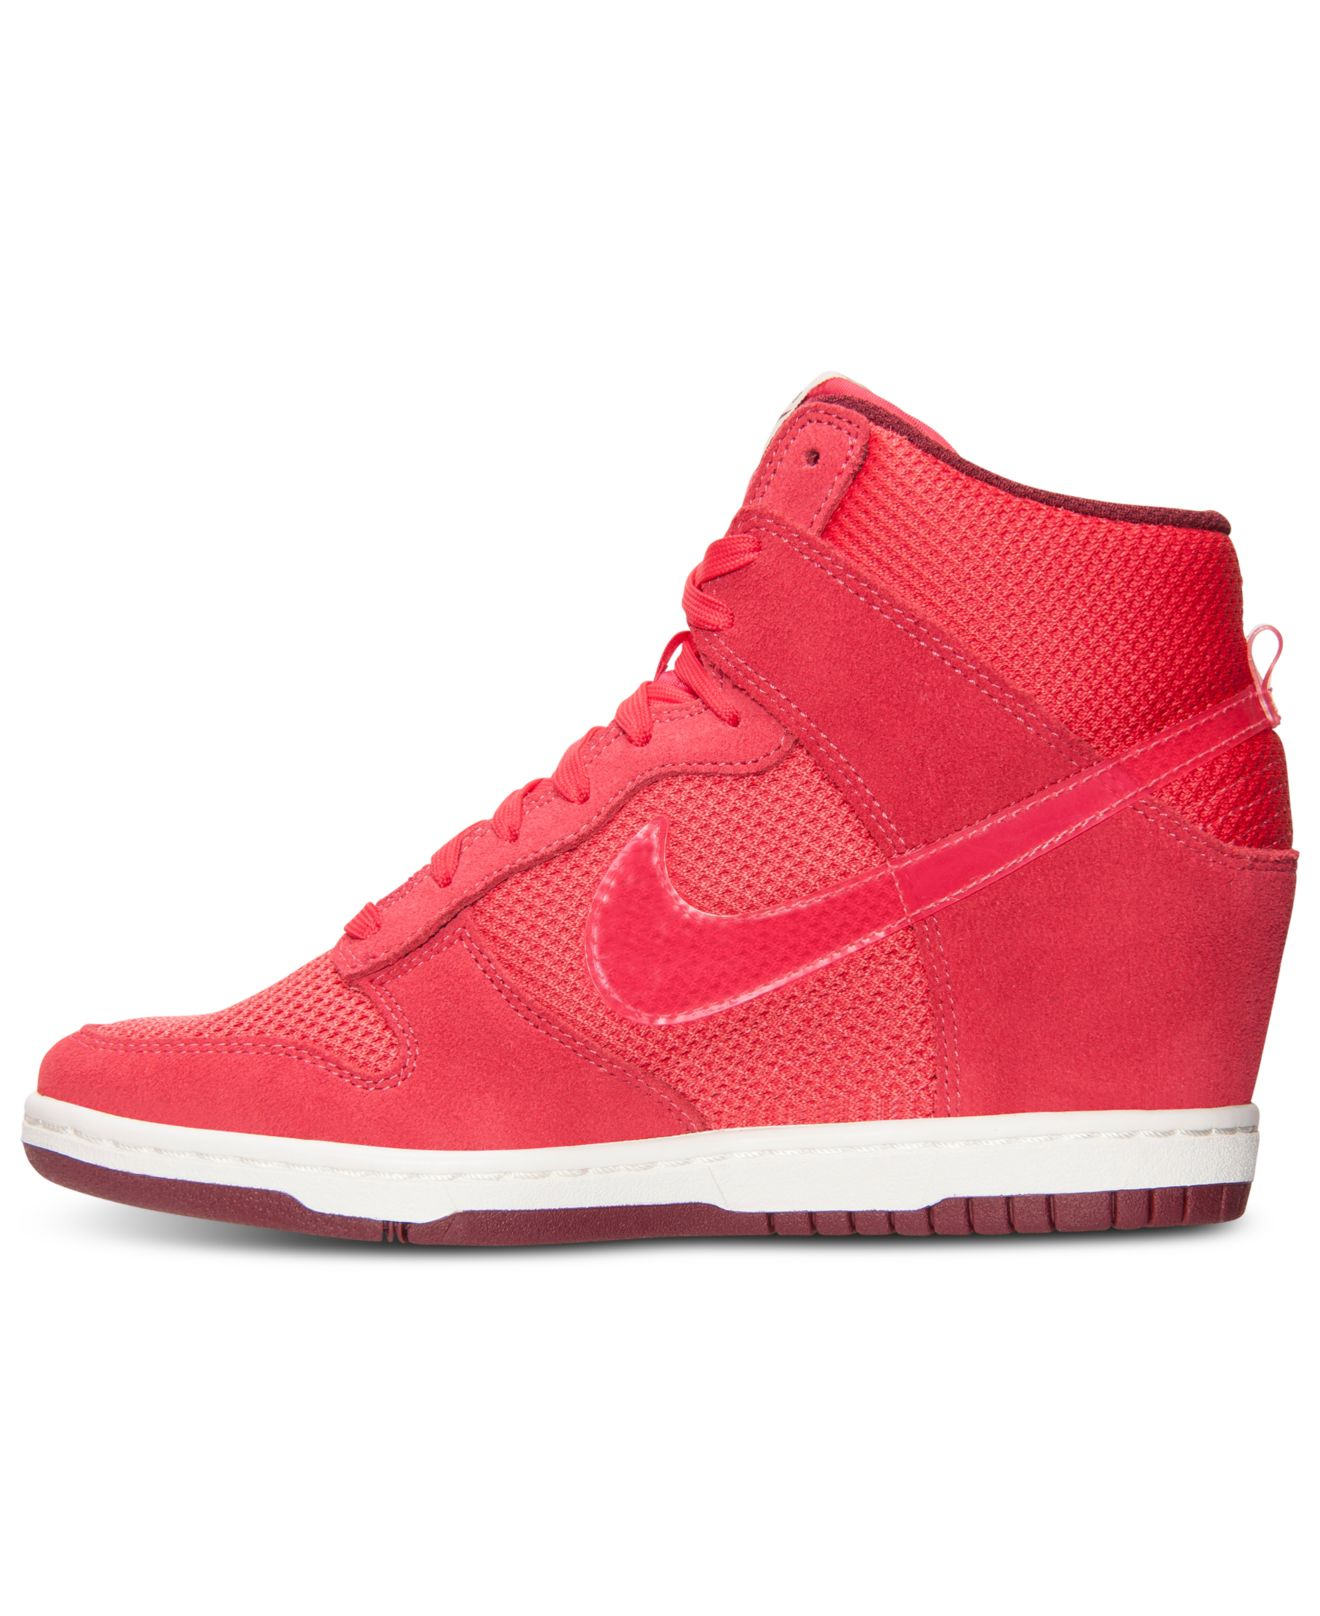 new concept 0f05a ae4de ... ireland lyst nike womens dunk sky hi essential casual sneakers from  957b1 d6957 ...